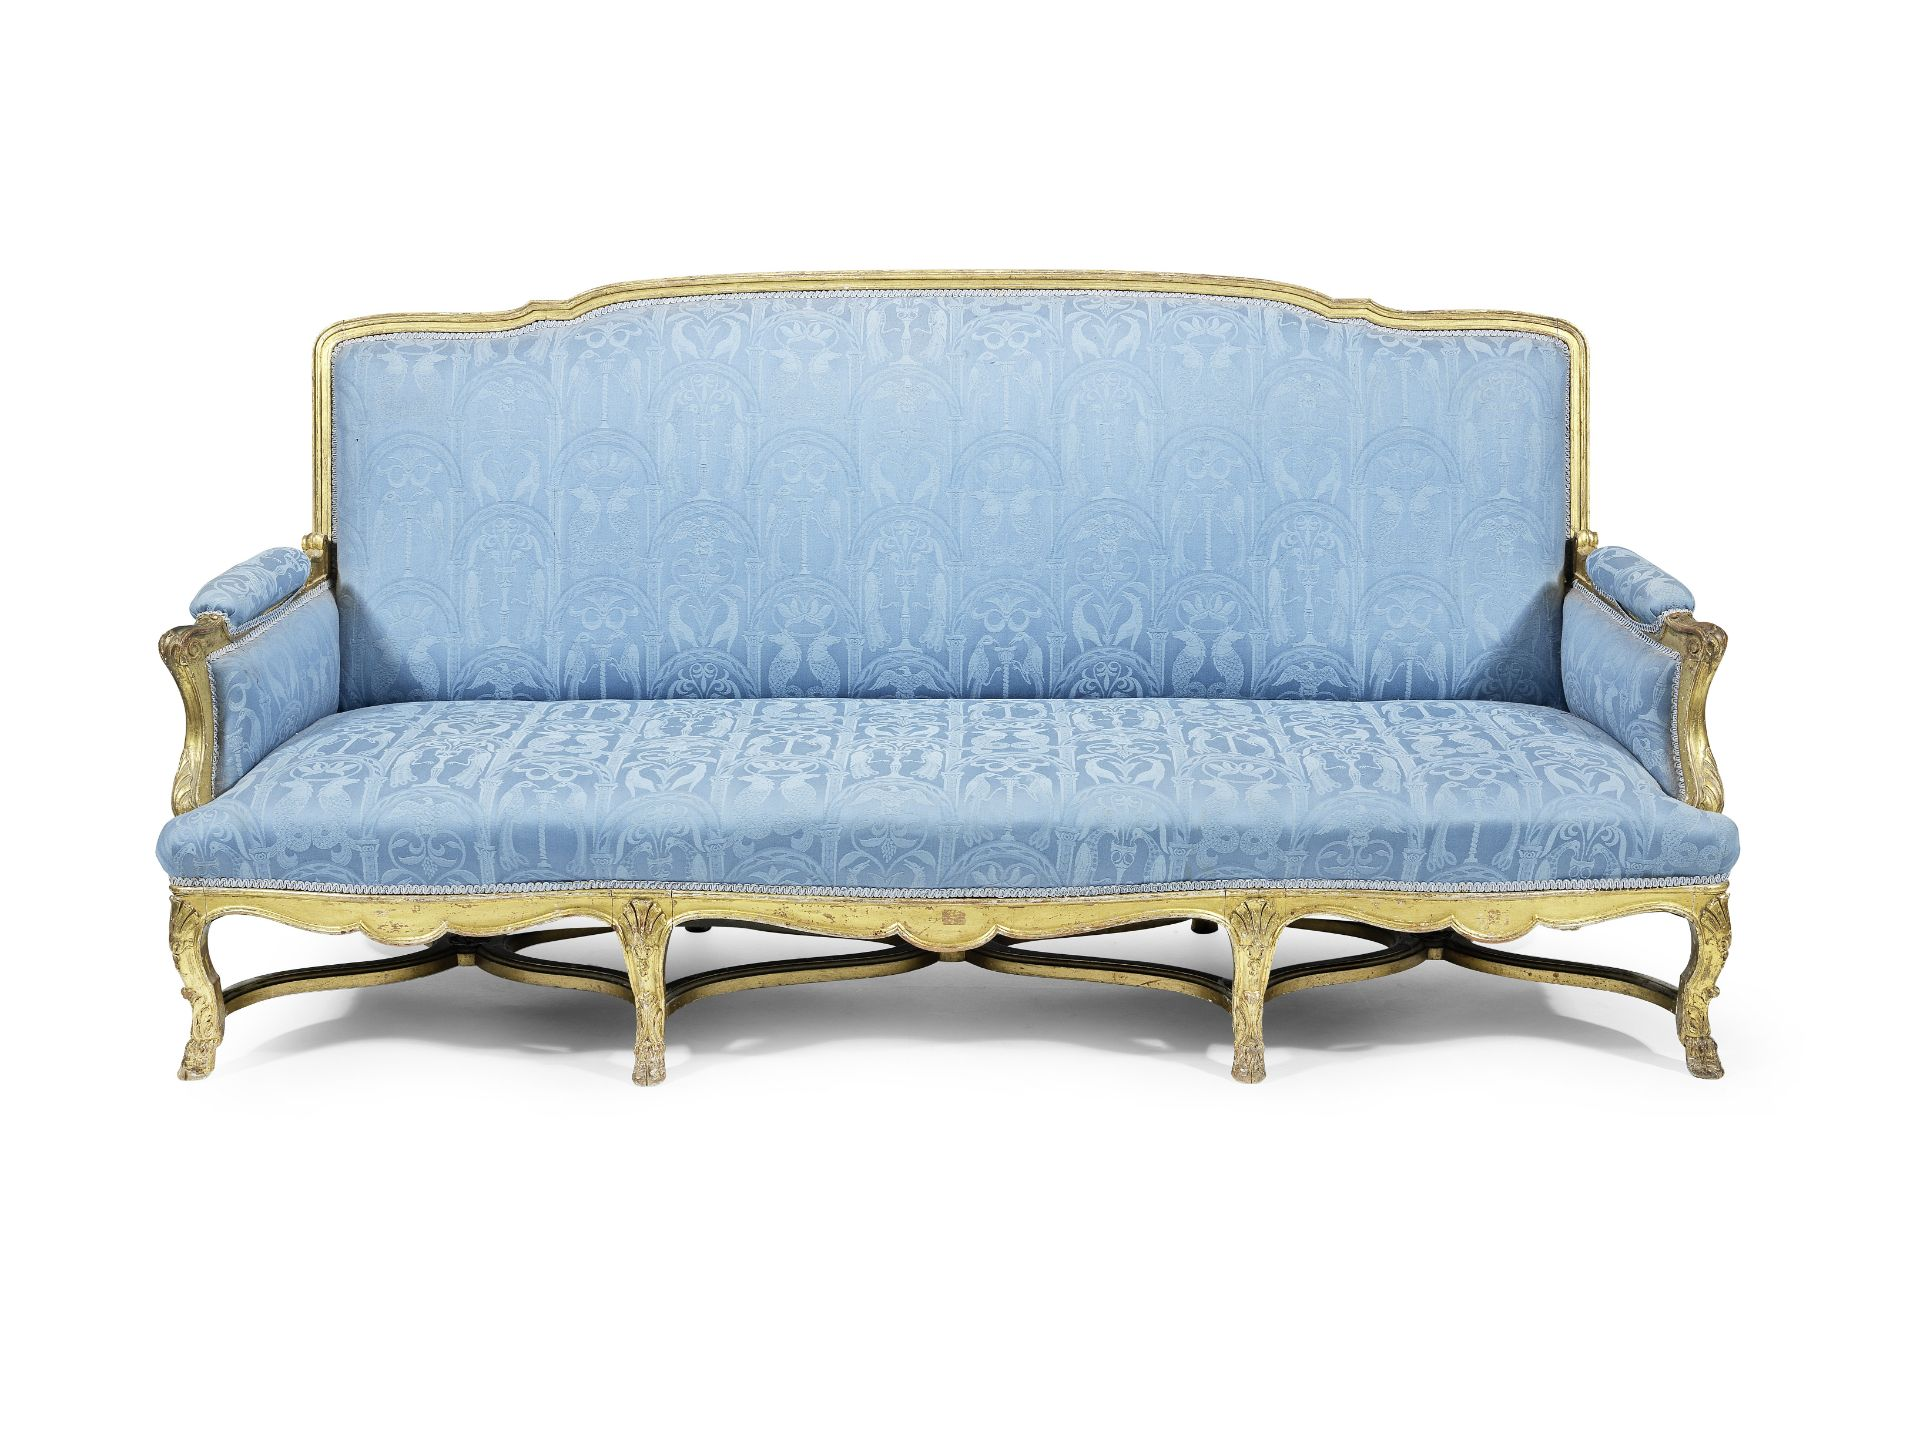 Los 230 - A French 19th century giltwood canape in the Louis XIV style